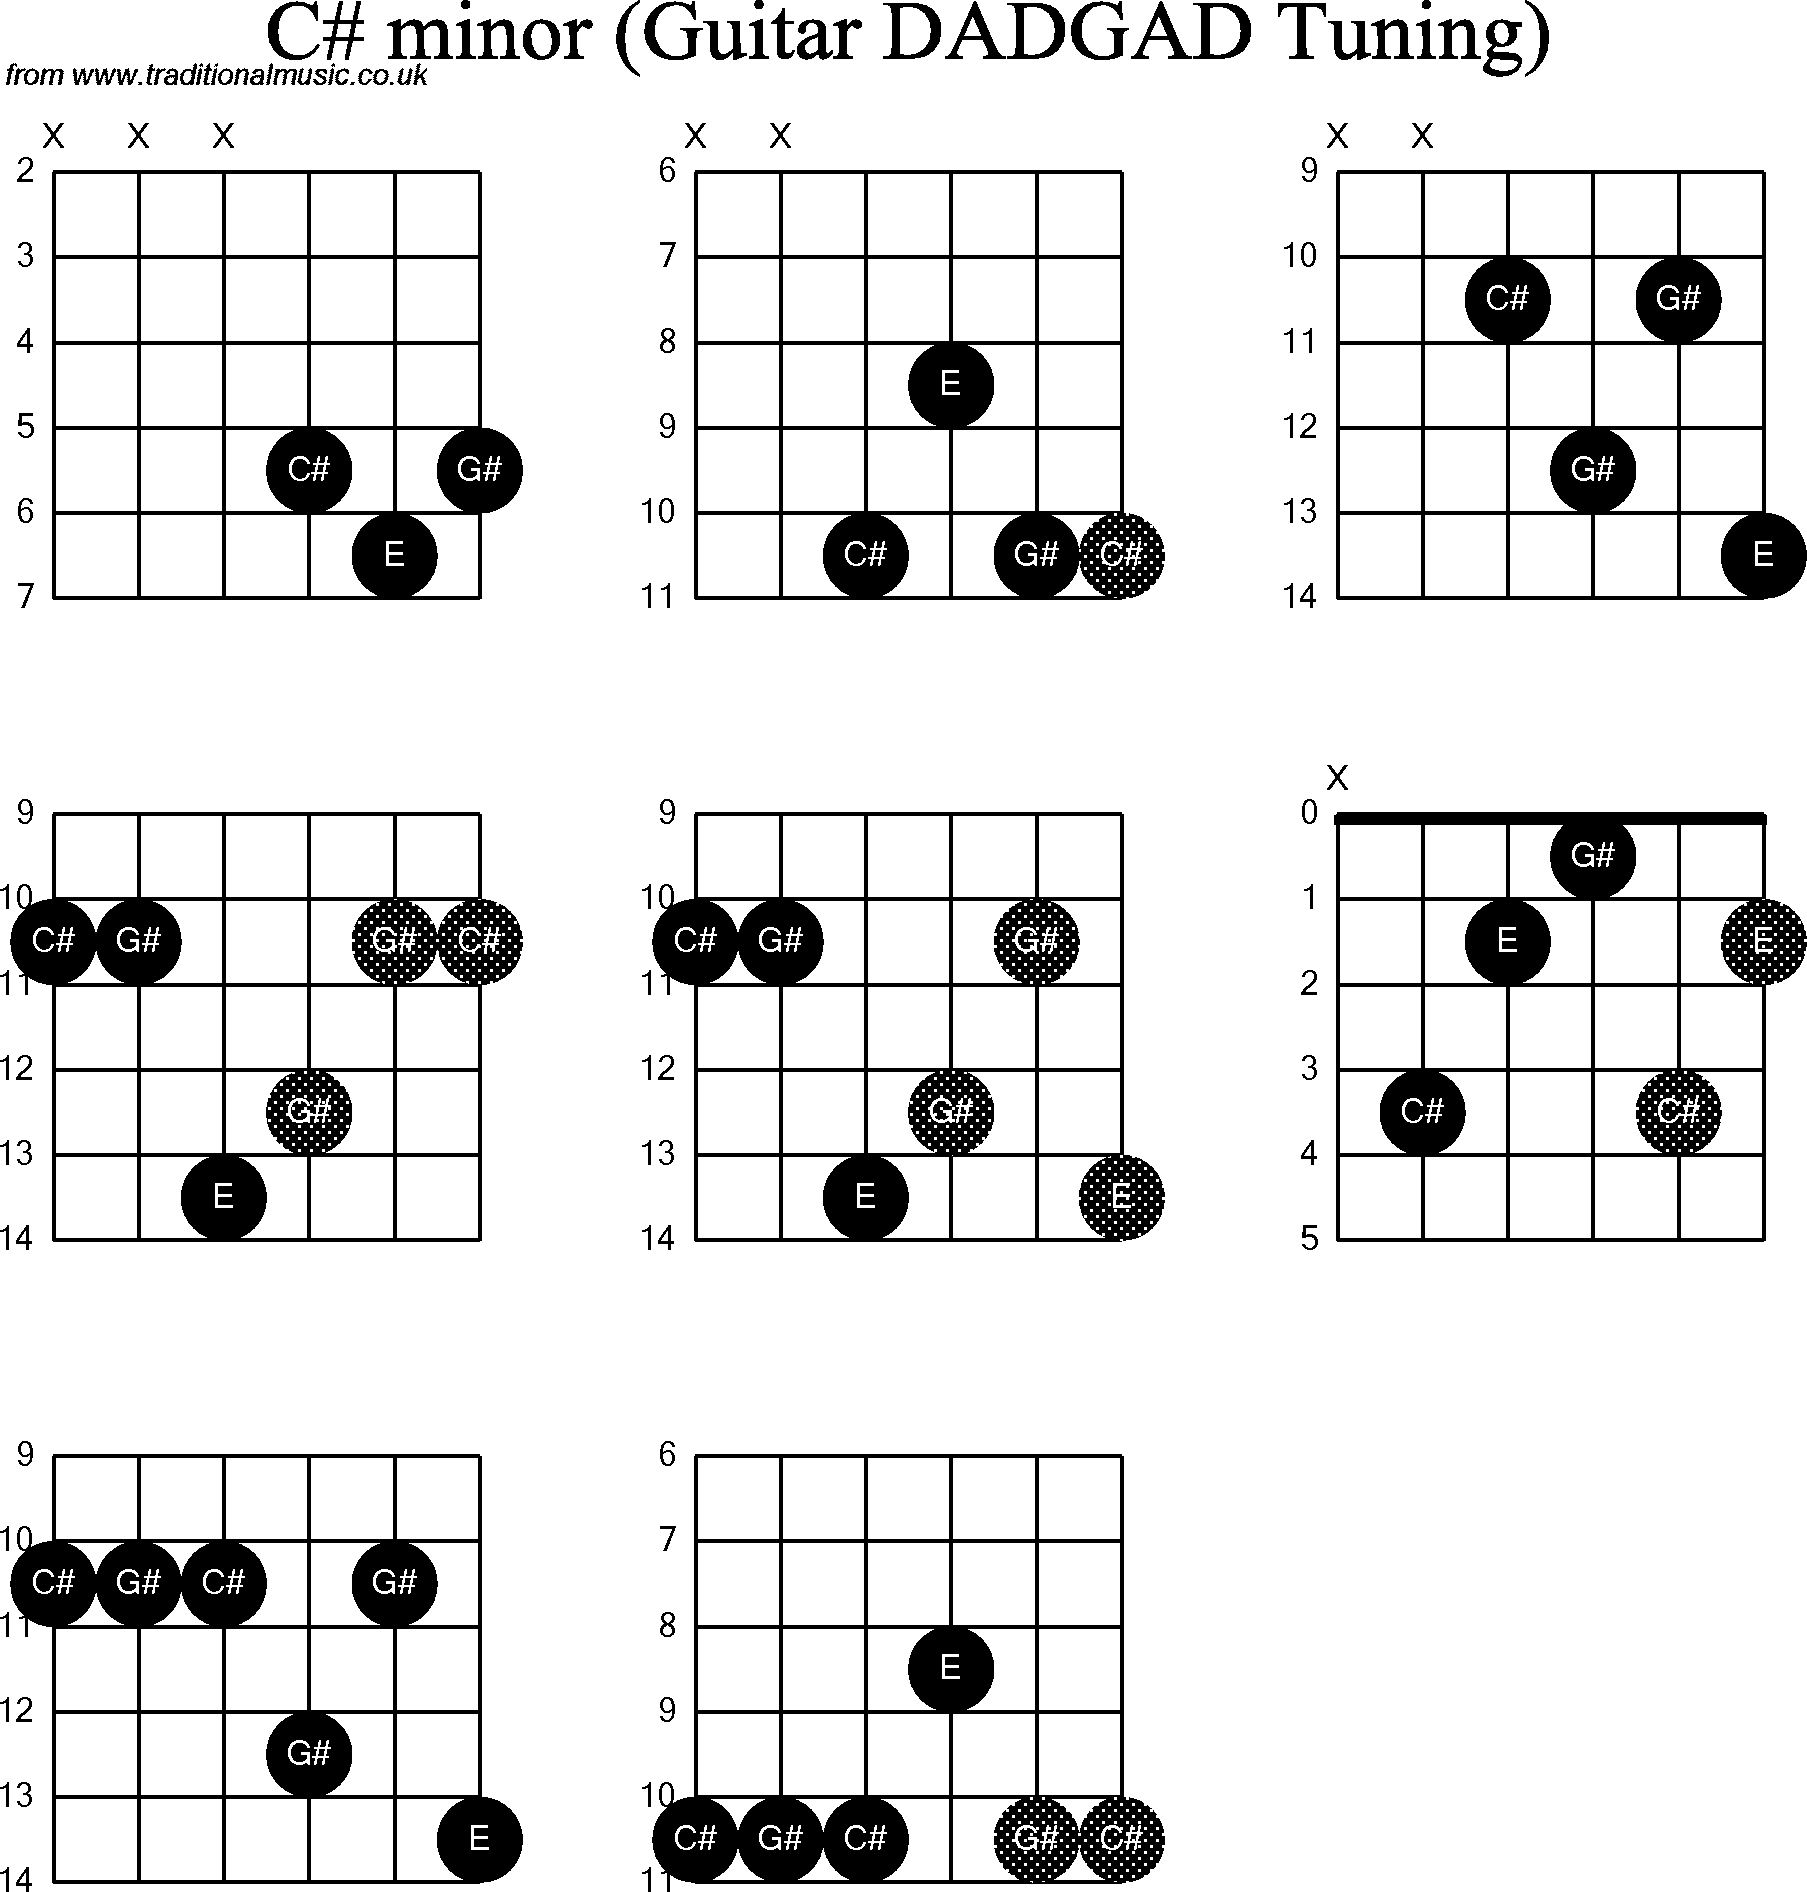 Chord diagrams d modal guitar dadgad c sharp minor chord diagrams for d modal guitardadgad c sharp minor hexwebz Choice Image